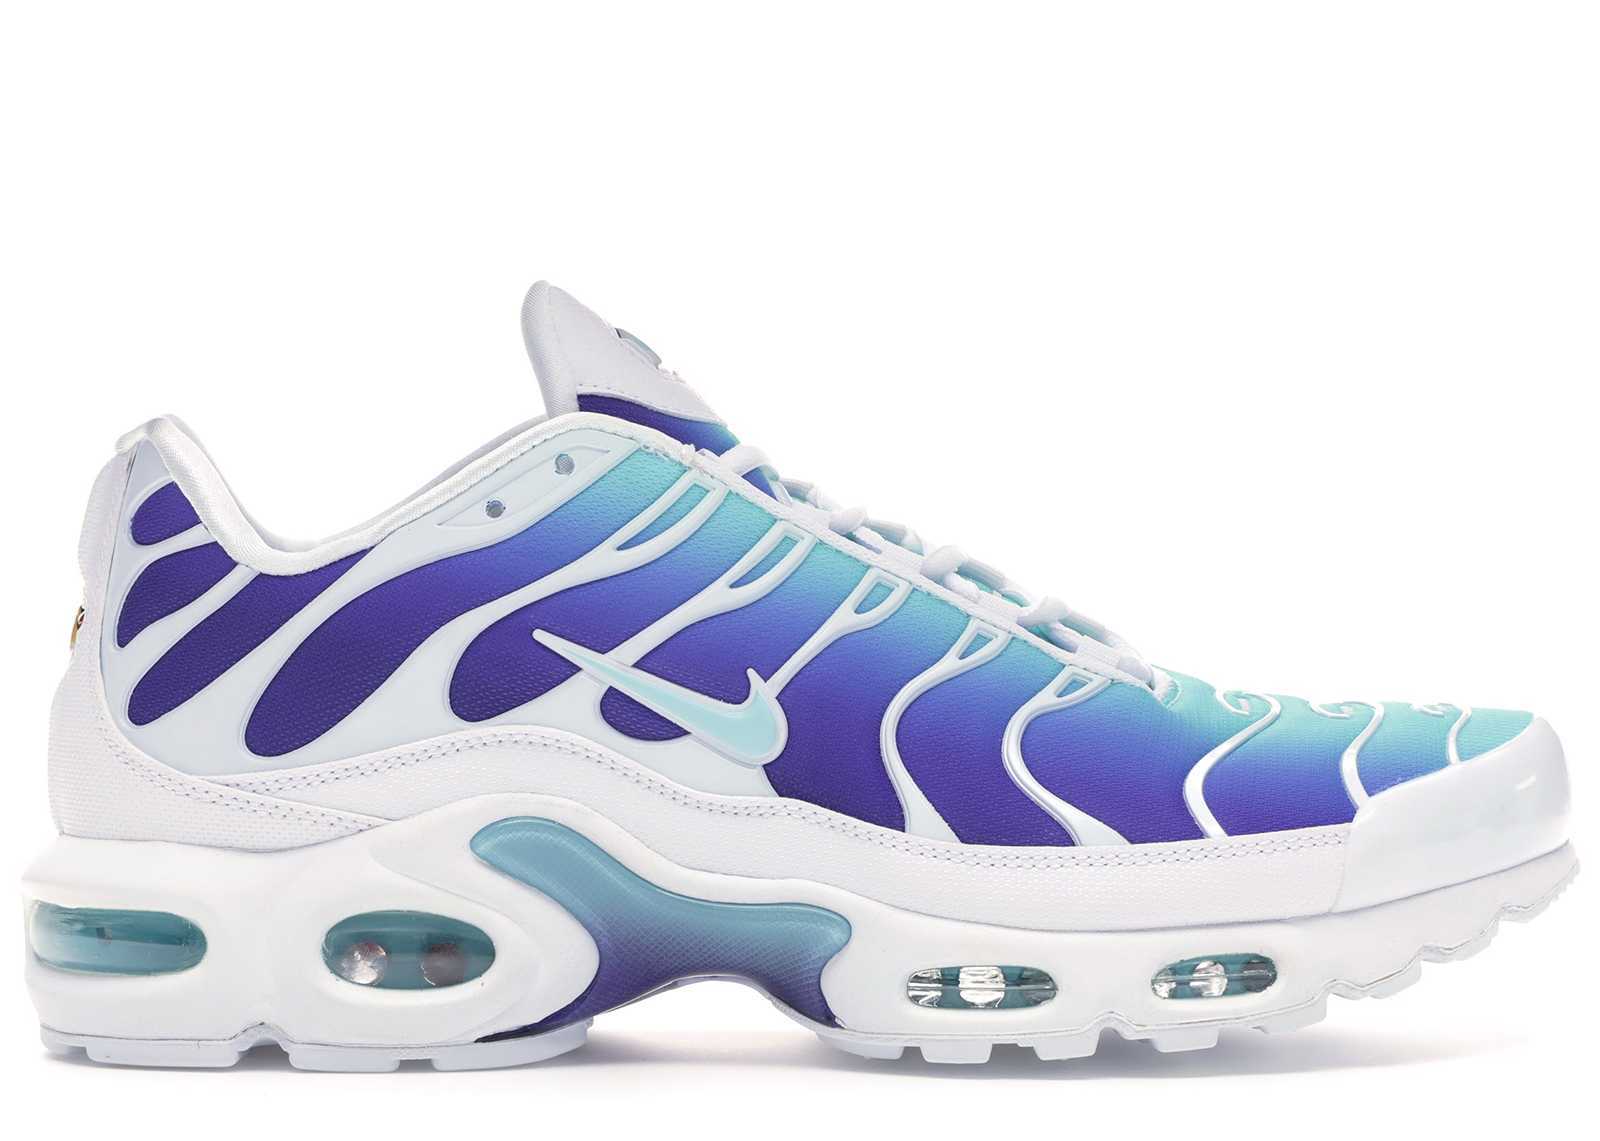 Nike Air Max Plus Bleached Aqua Fierce Purple (W) - AQ9979-100